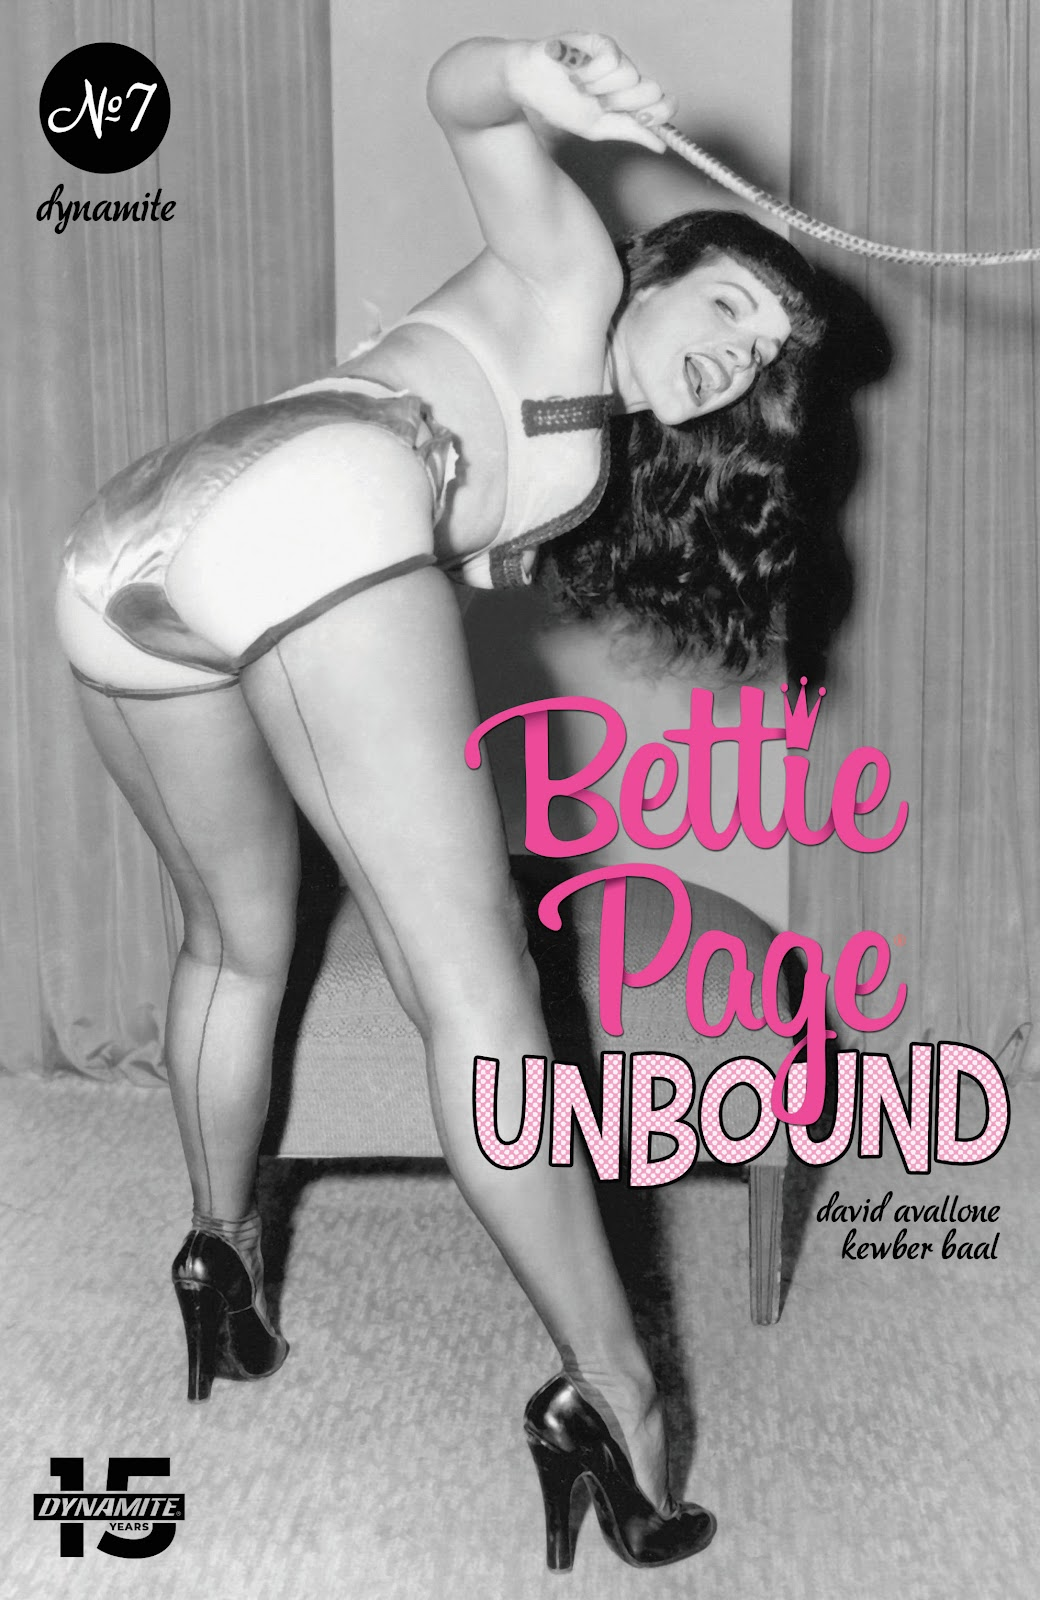 Read online Bettie Page: Unbound comic -  Issue #7 - 5